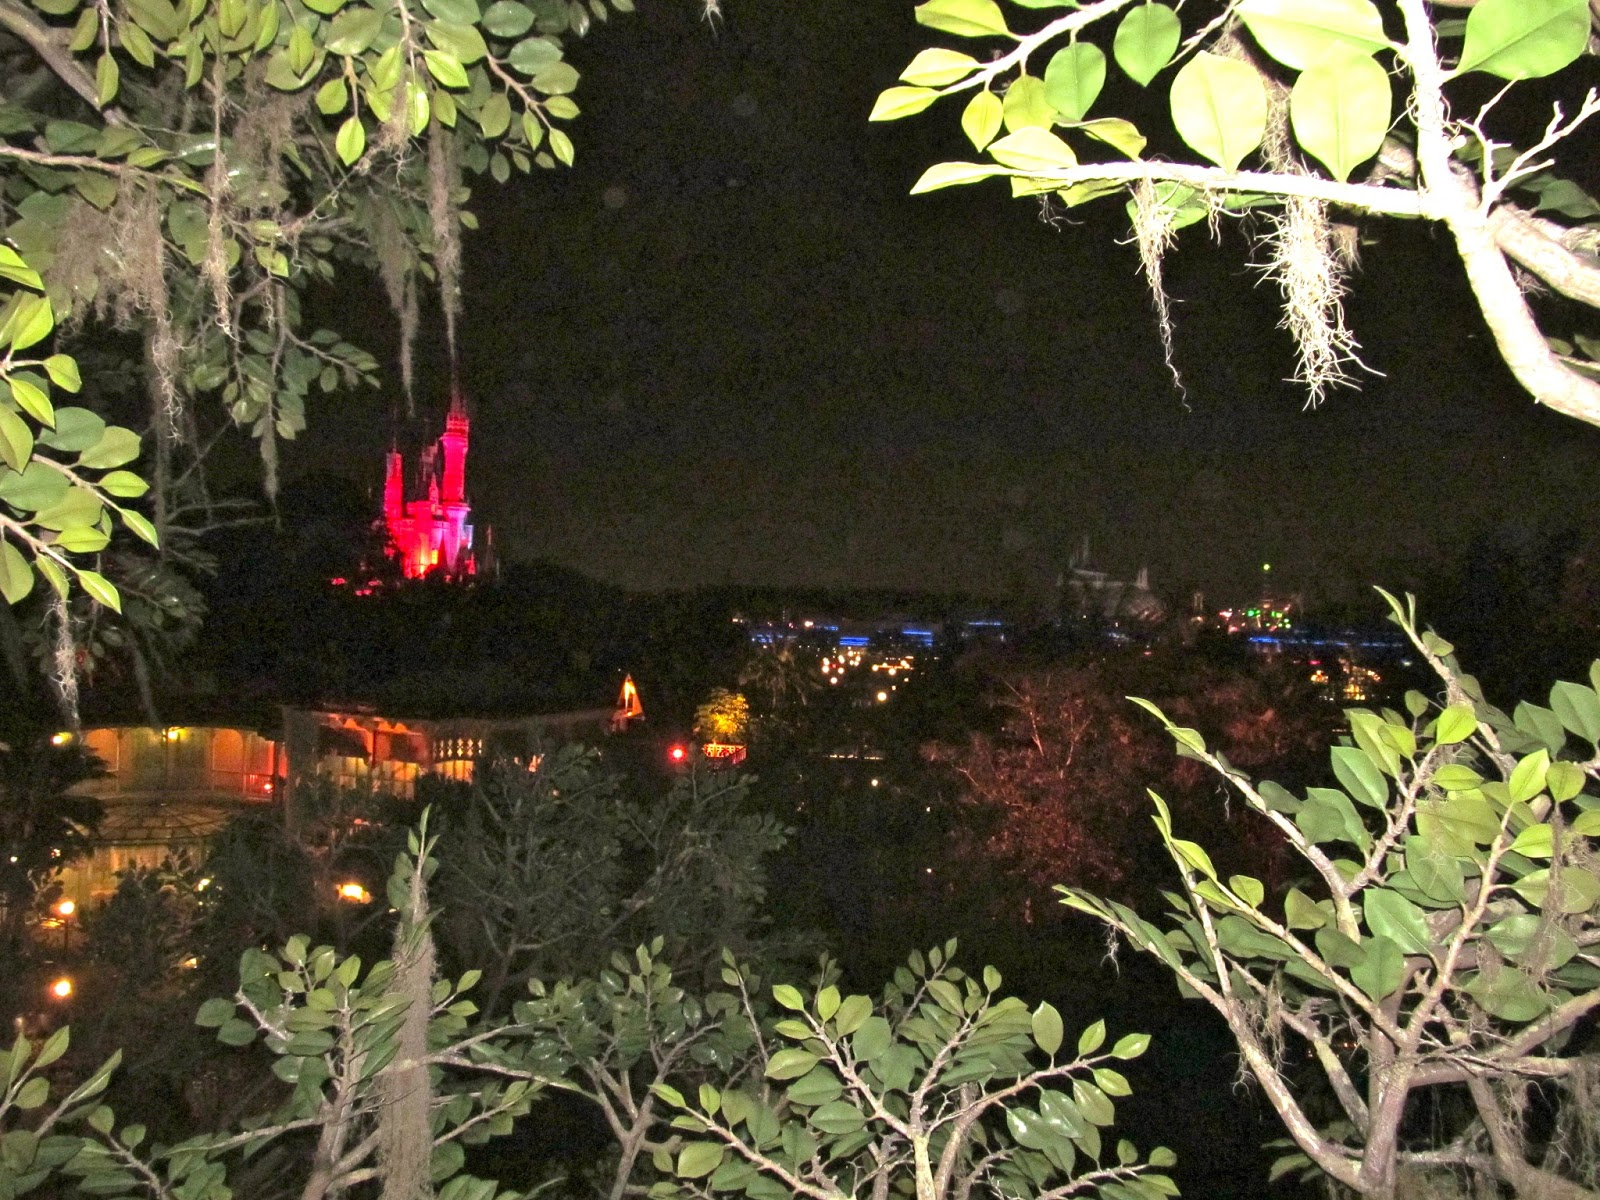 The View of the Castle from the Top of the Swiss Family Robinson Tree during Mickey's Not So Scary Halloween Party - www.ouroutdoortravels.blogspot.com